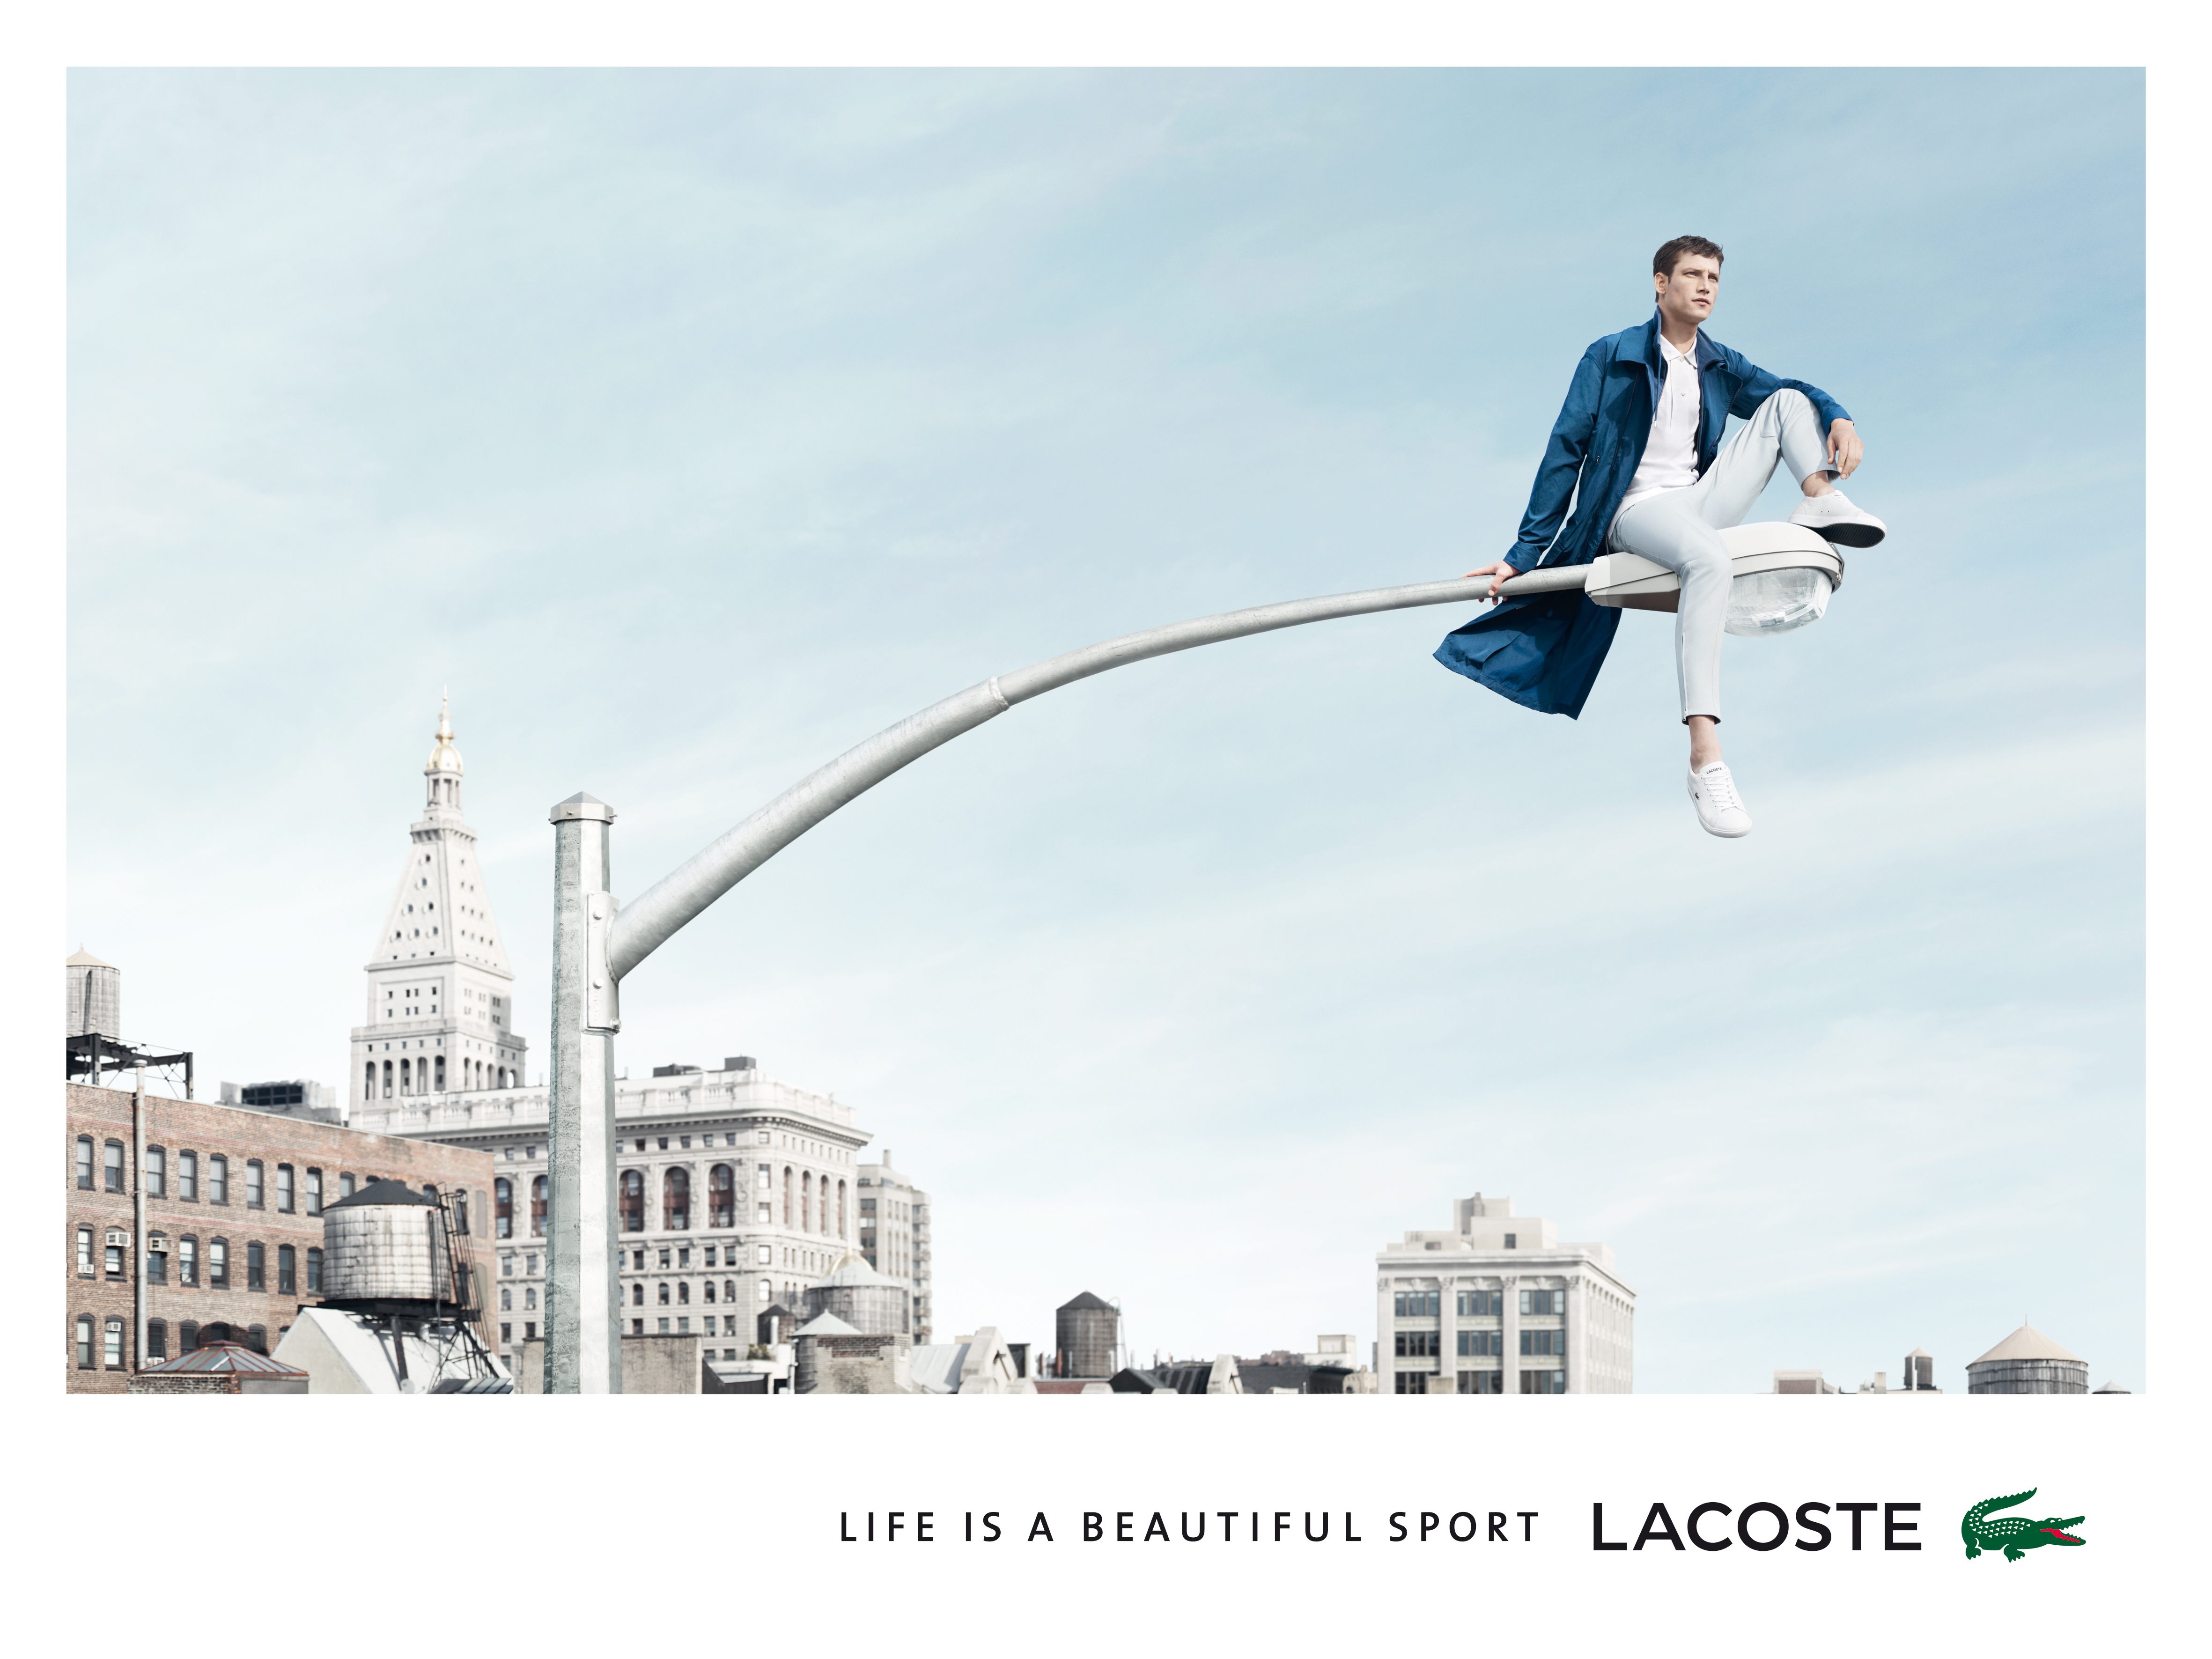 A SportLa Beautiful Is Campagne De Publicitaire Life Nouvelle 7yfbY6g